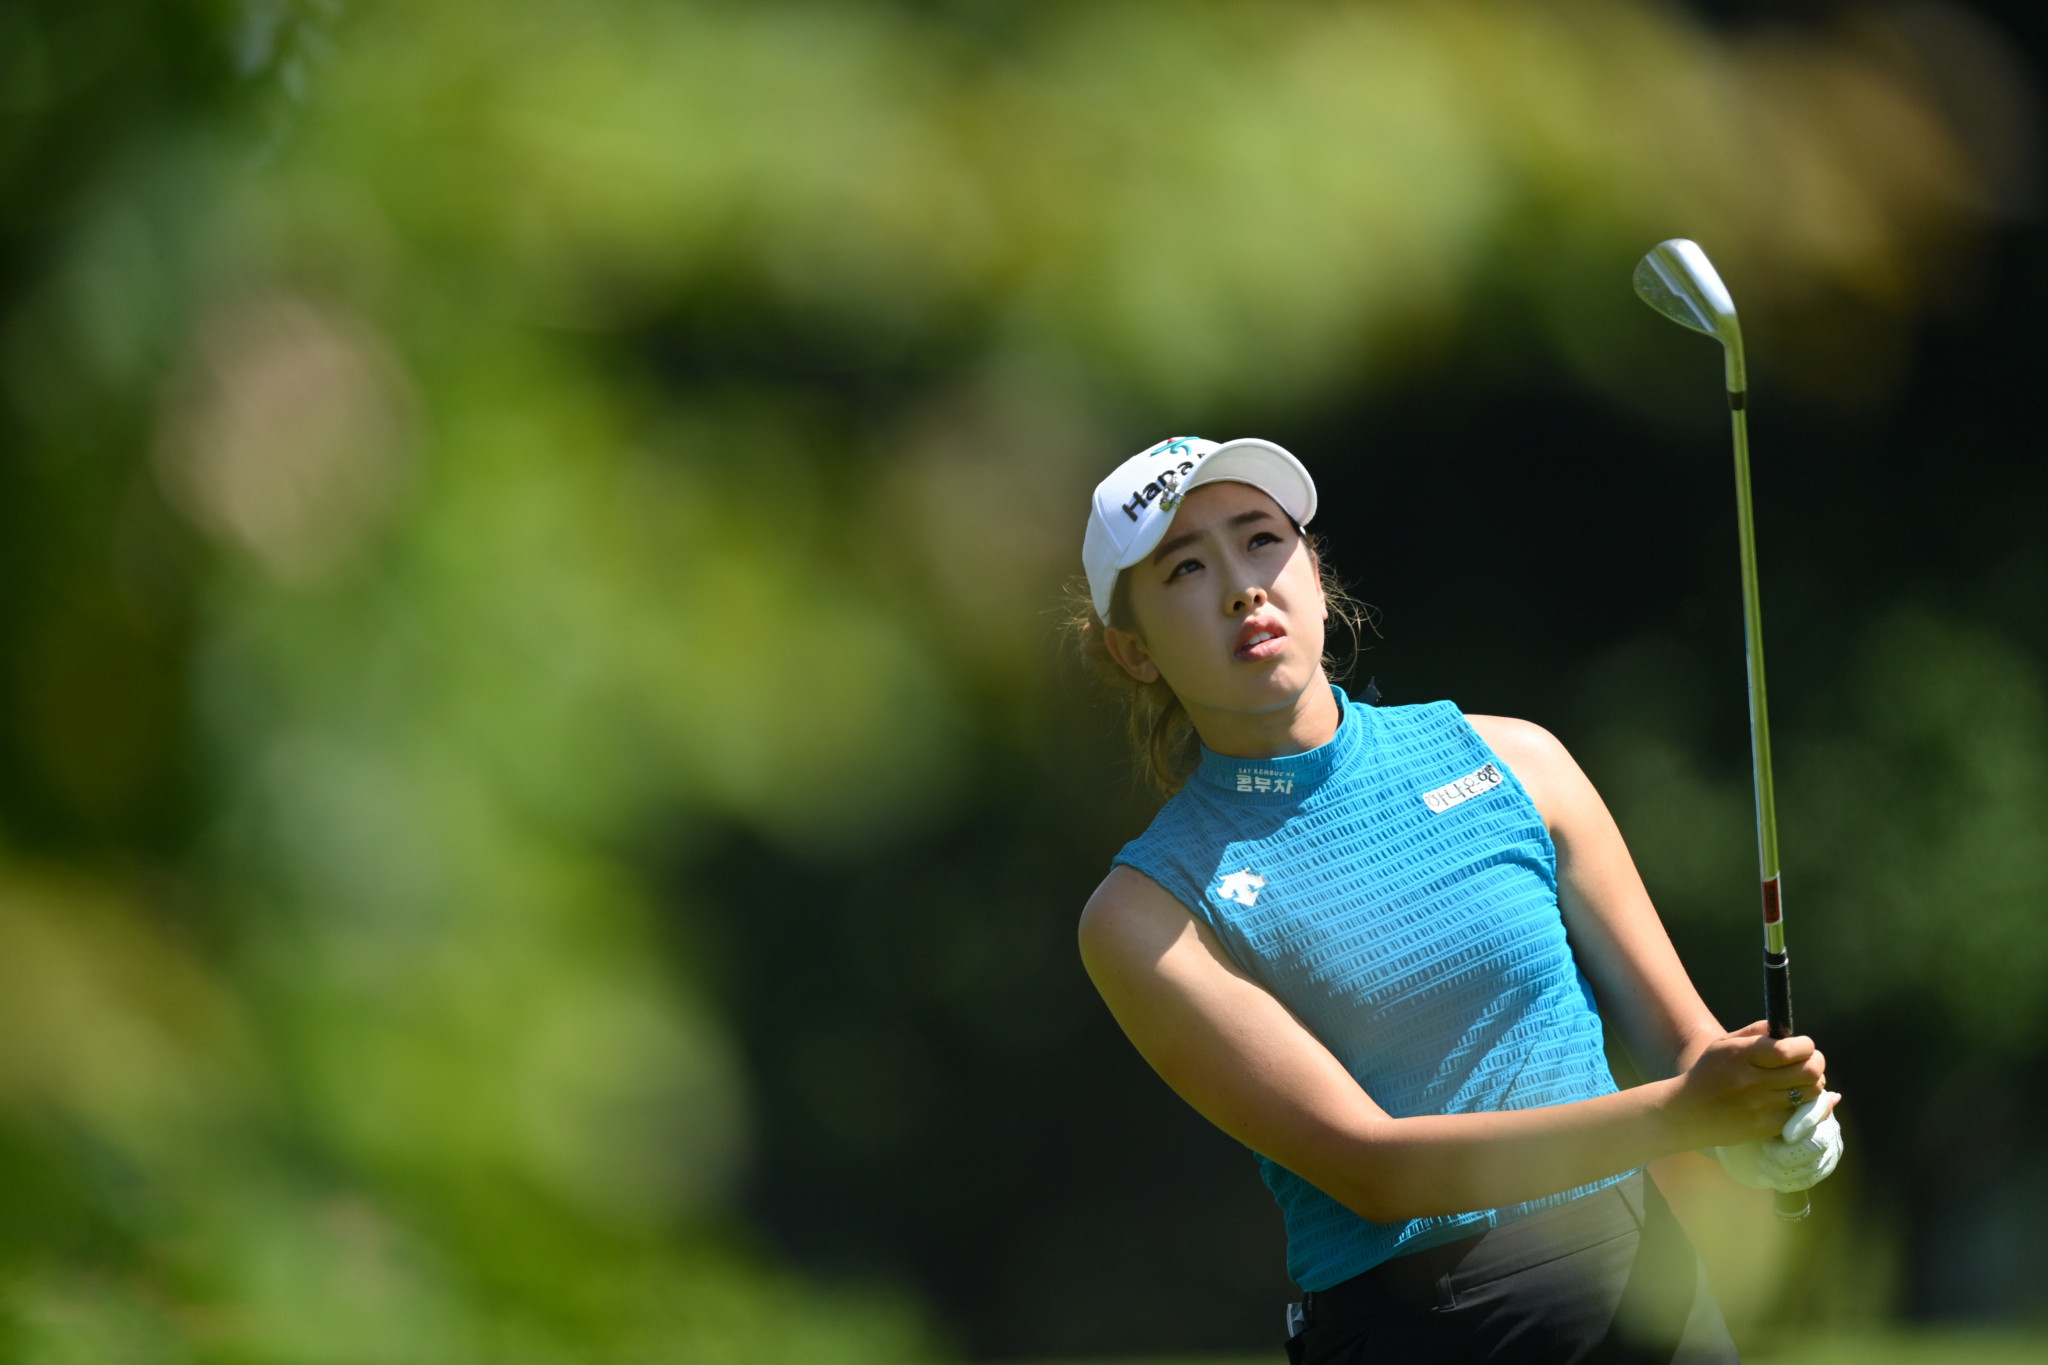 Teenager Noh tied for Evian Championship lead after opening-hole eagle